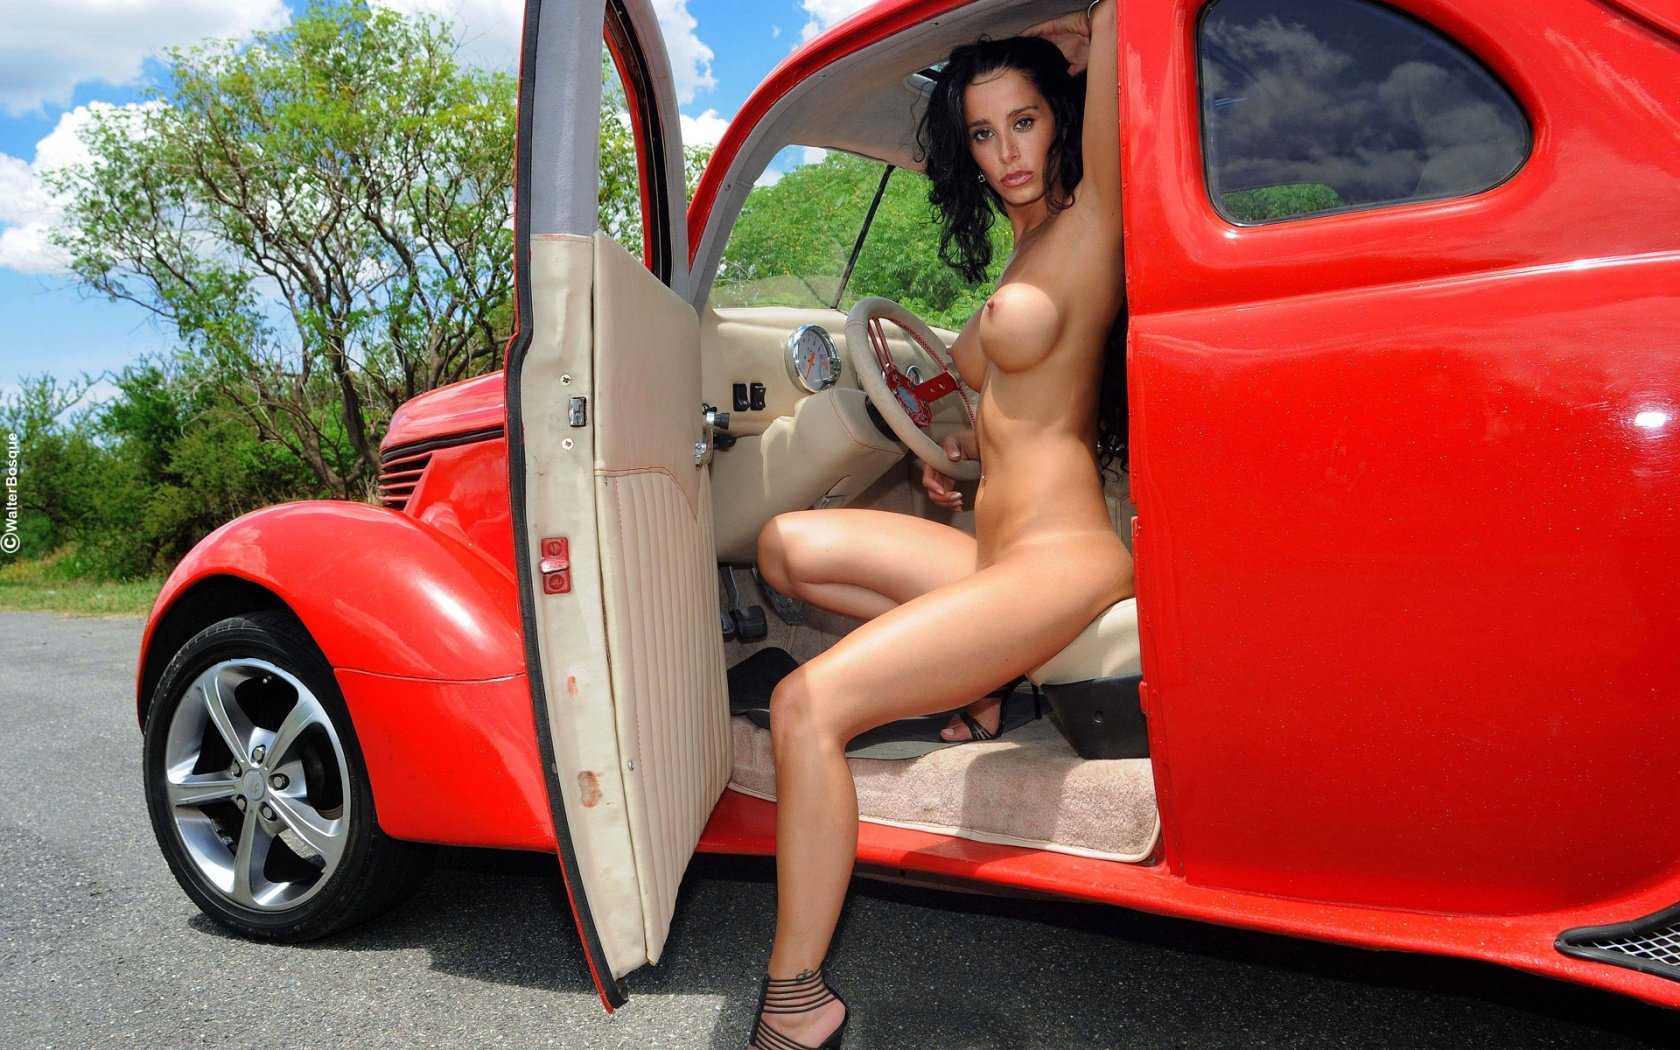 Hot rod girls behind scenes nude — photo 12